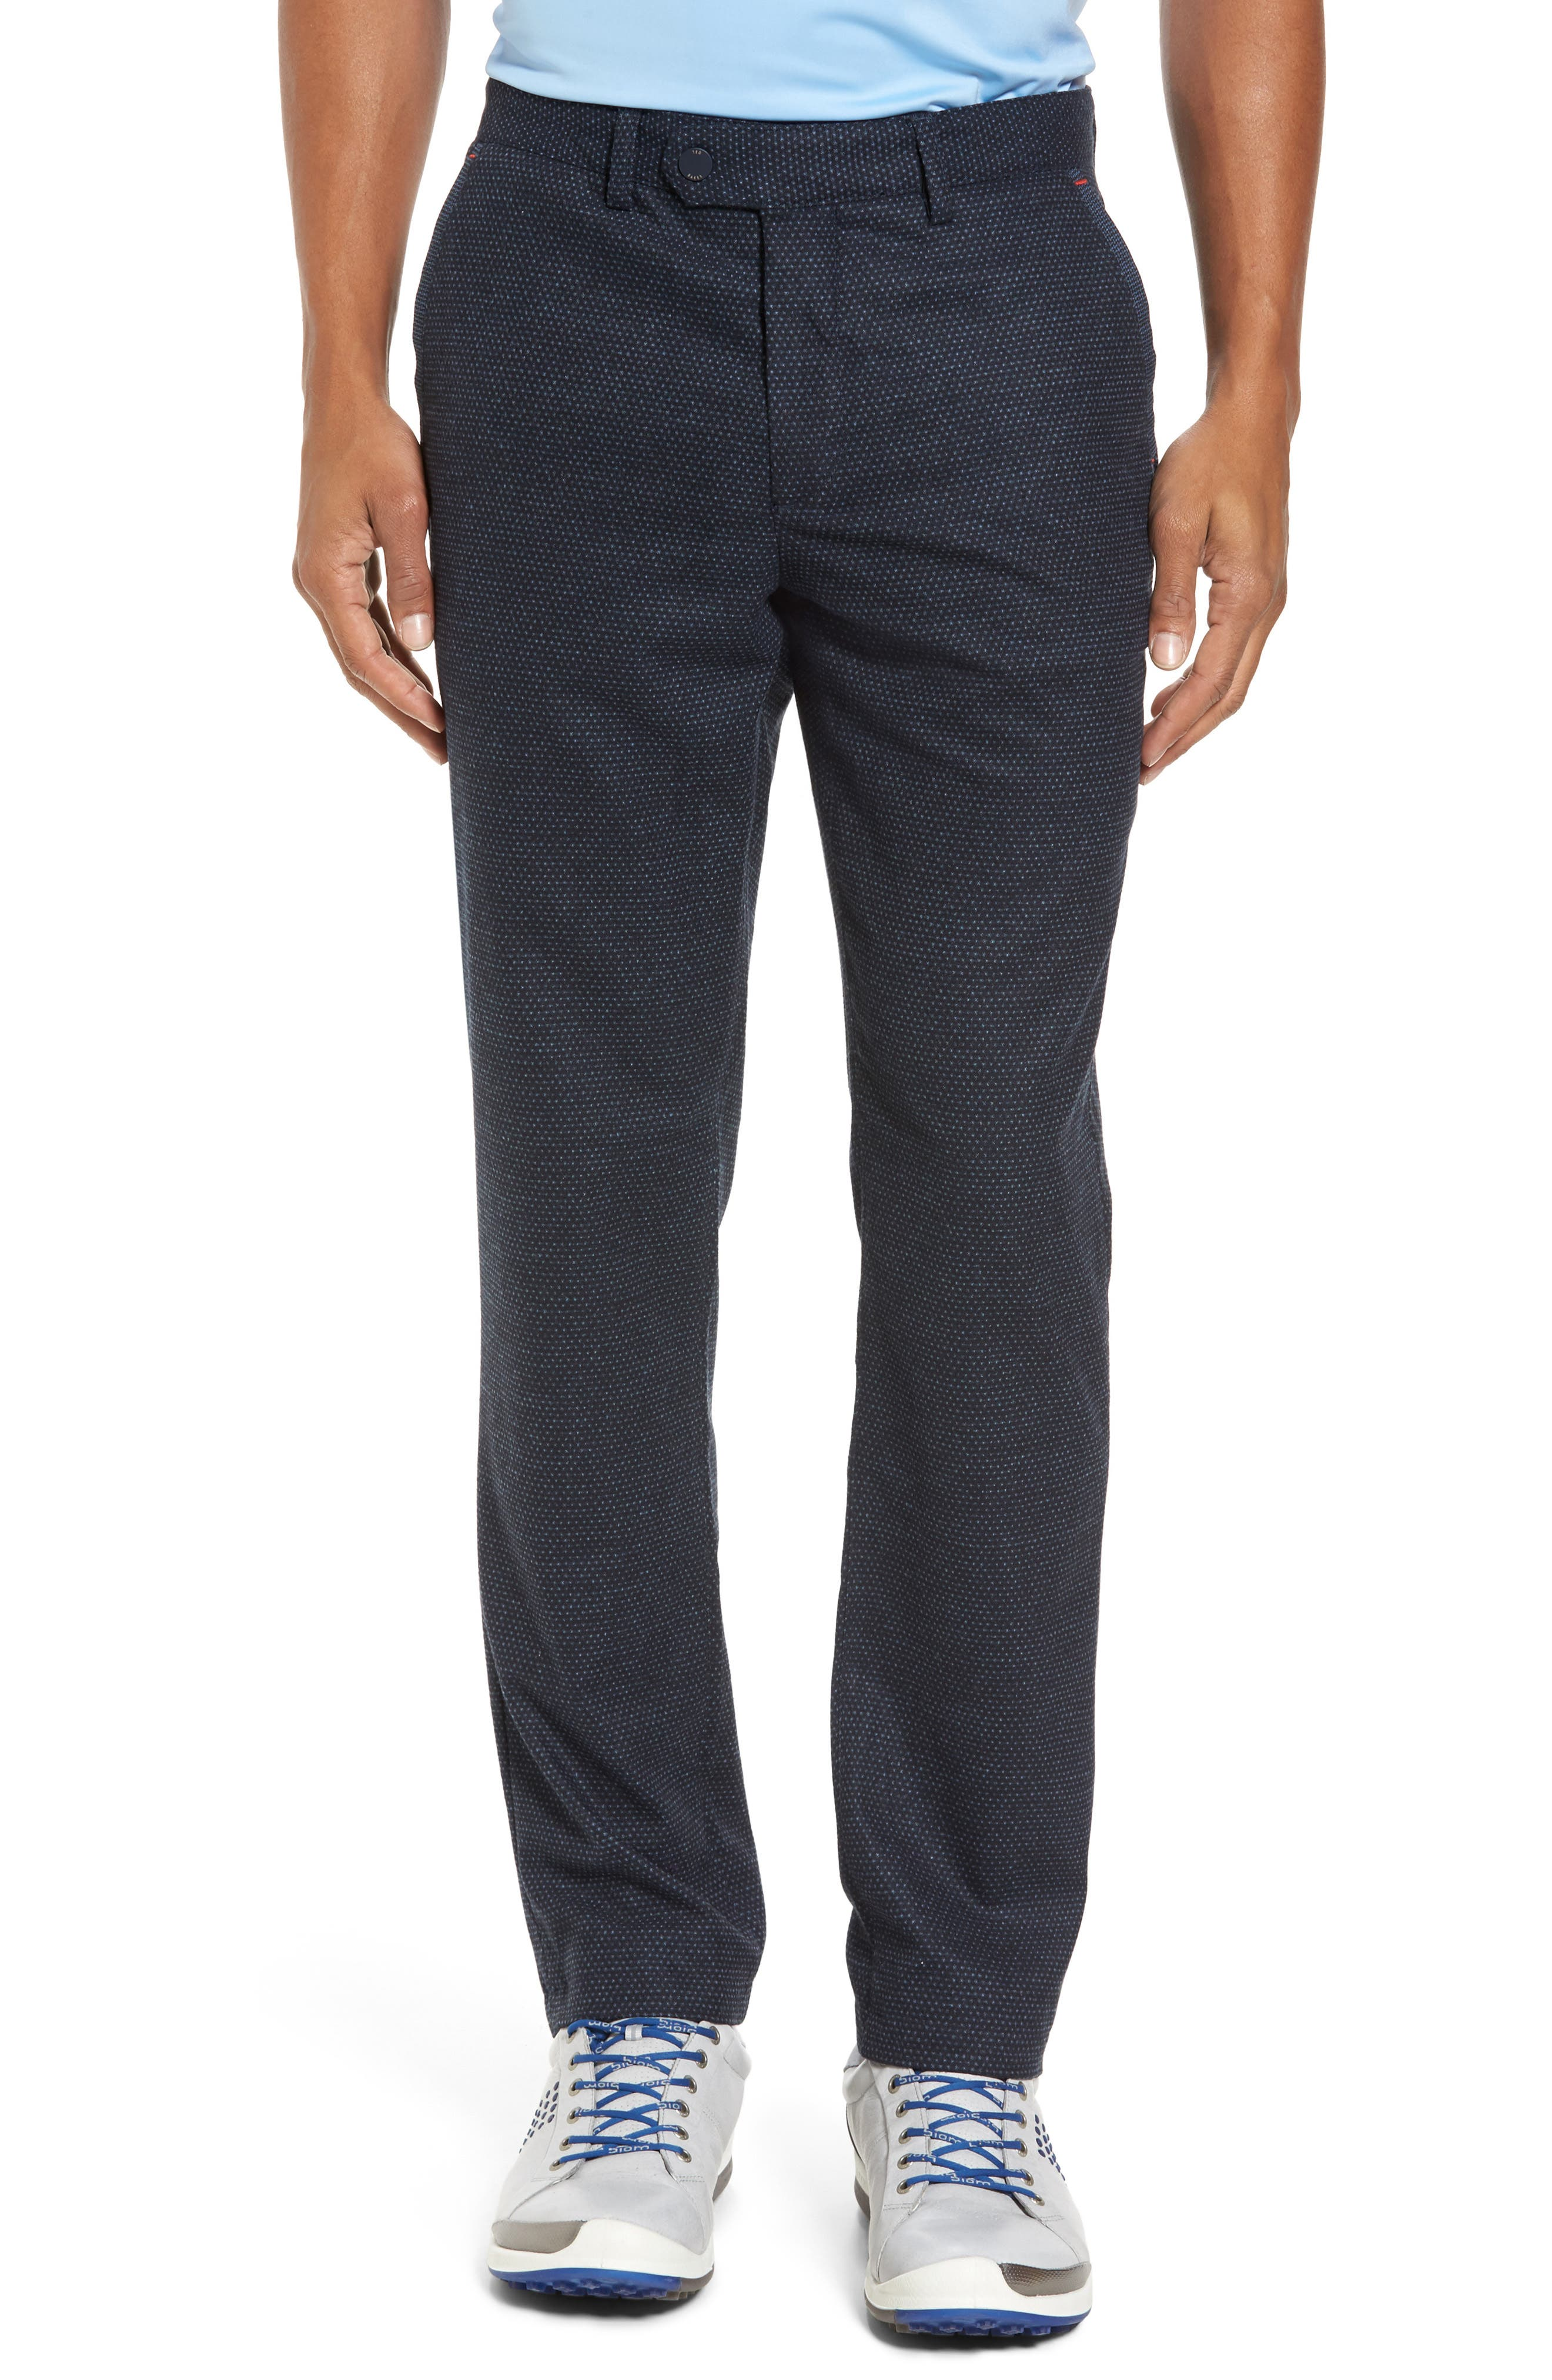 Main Image - Ted Baker London Water Resistant Golf Trousers